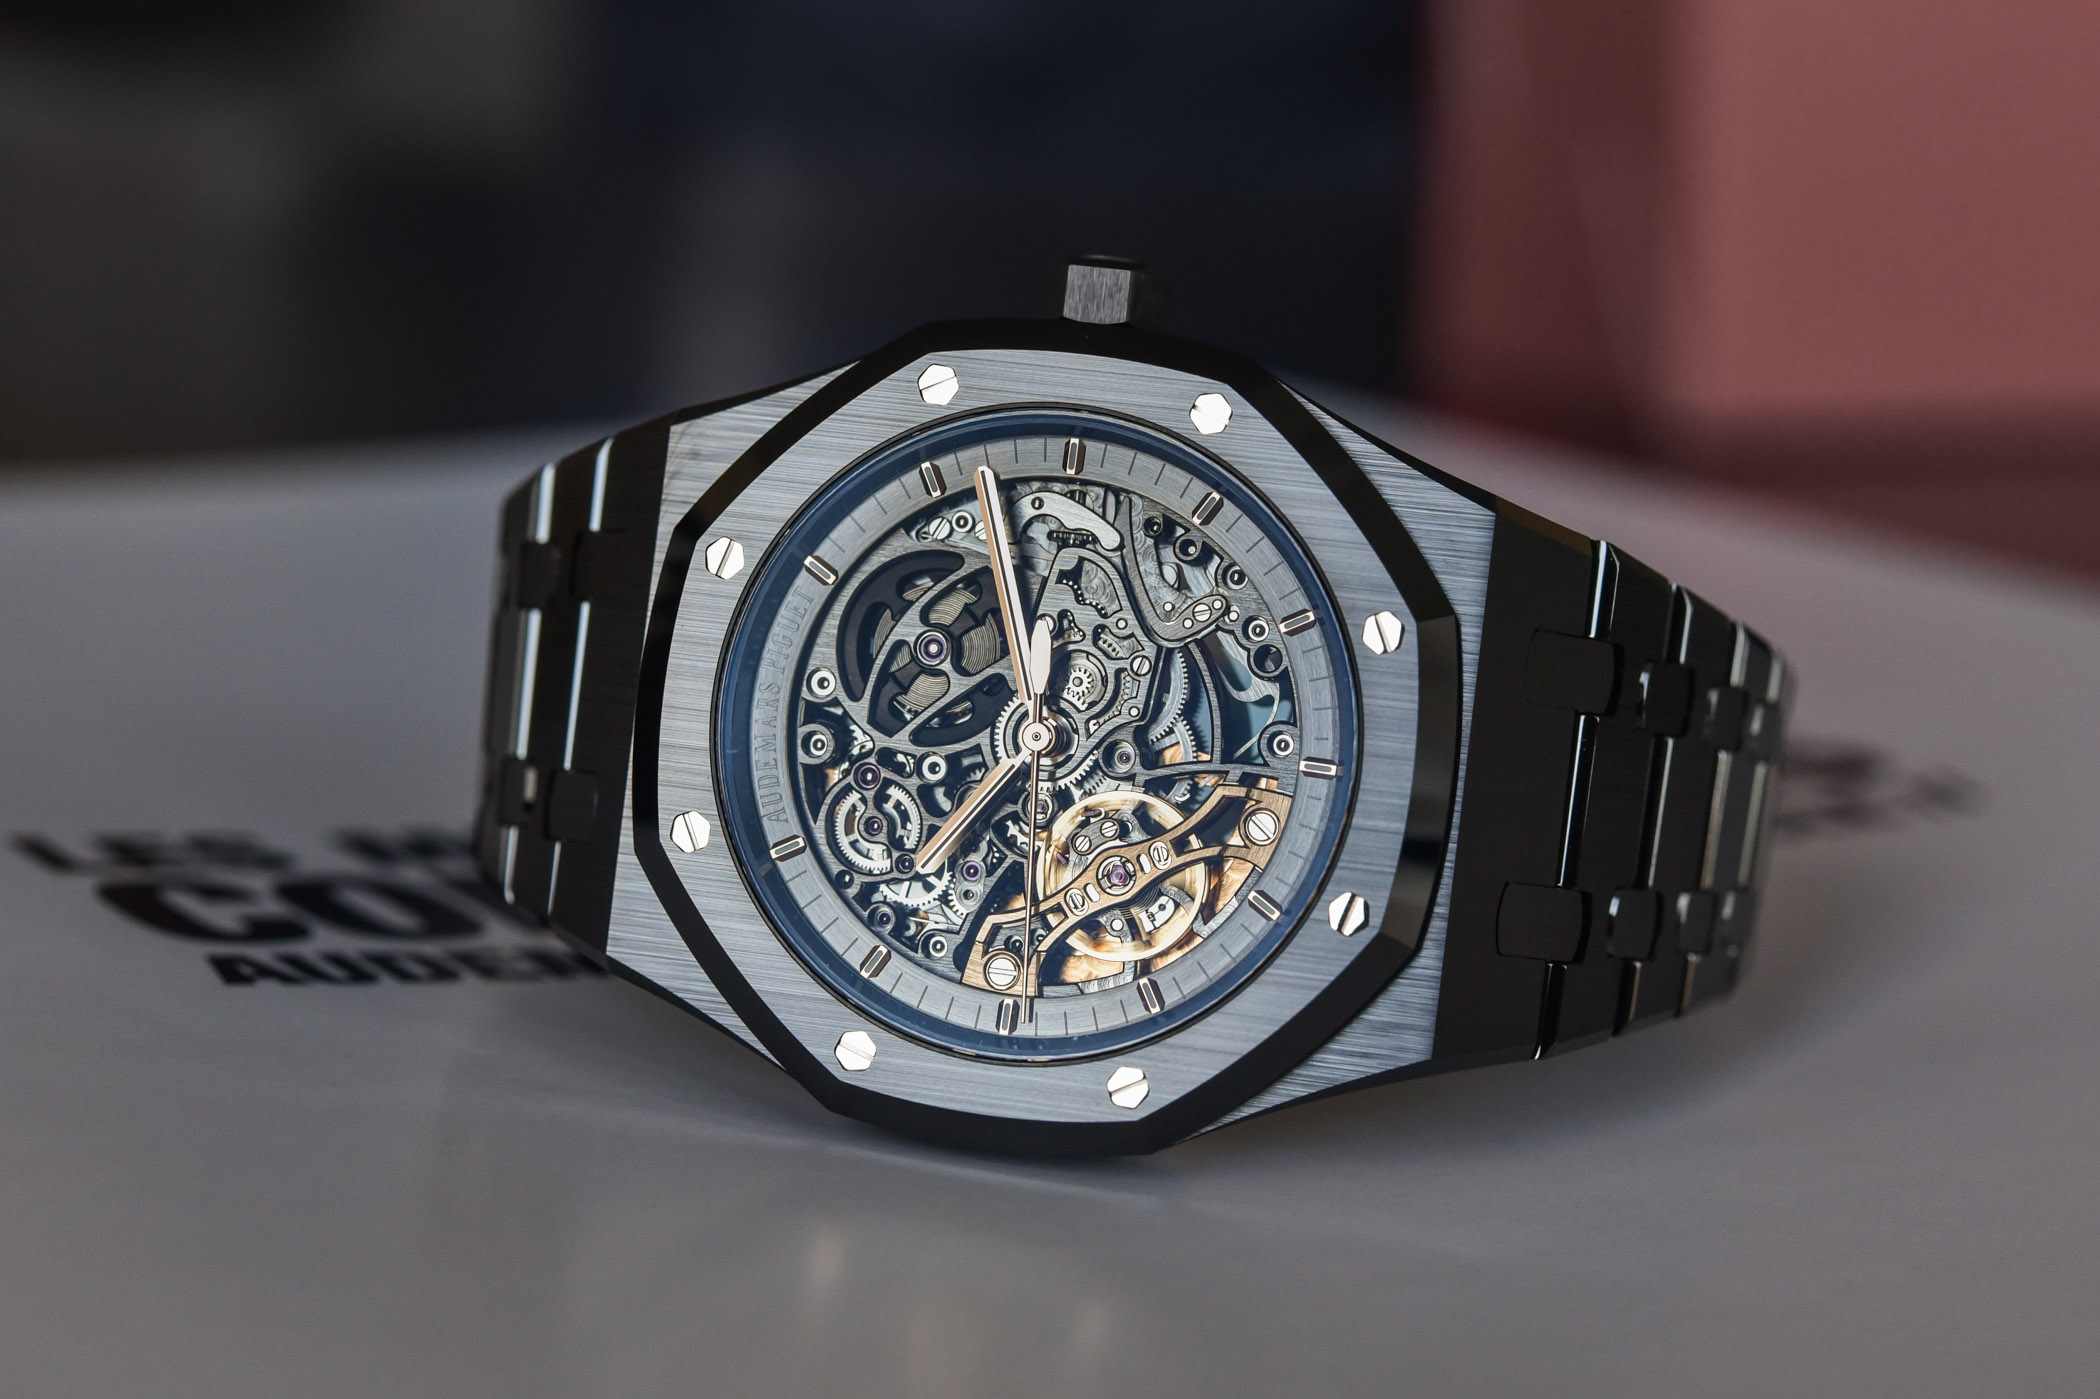 Audemars Piguet Royal Oak Double Balance Wheel Openworked Ceramic 41mm